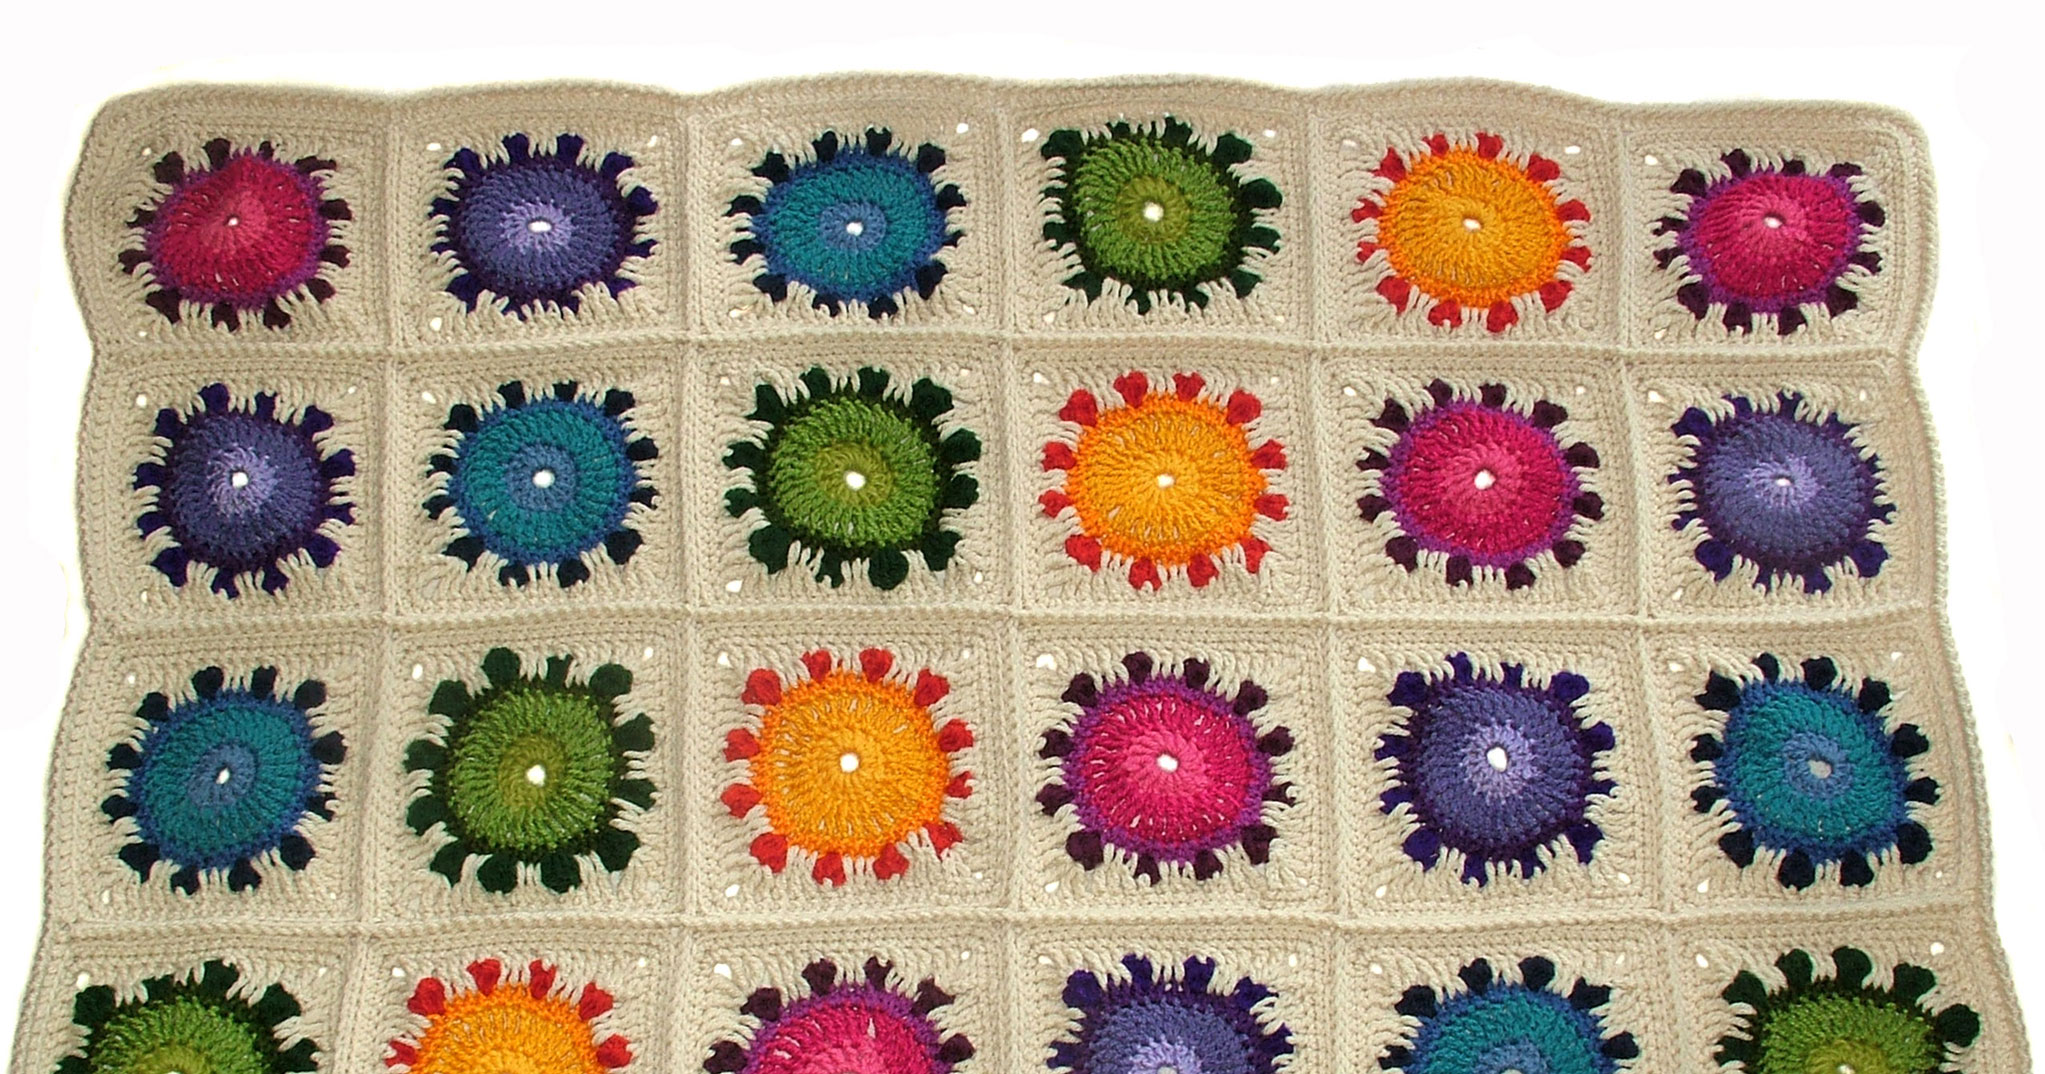 Sunflower Happiness ? a crochet rug (afghan) pattern ...